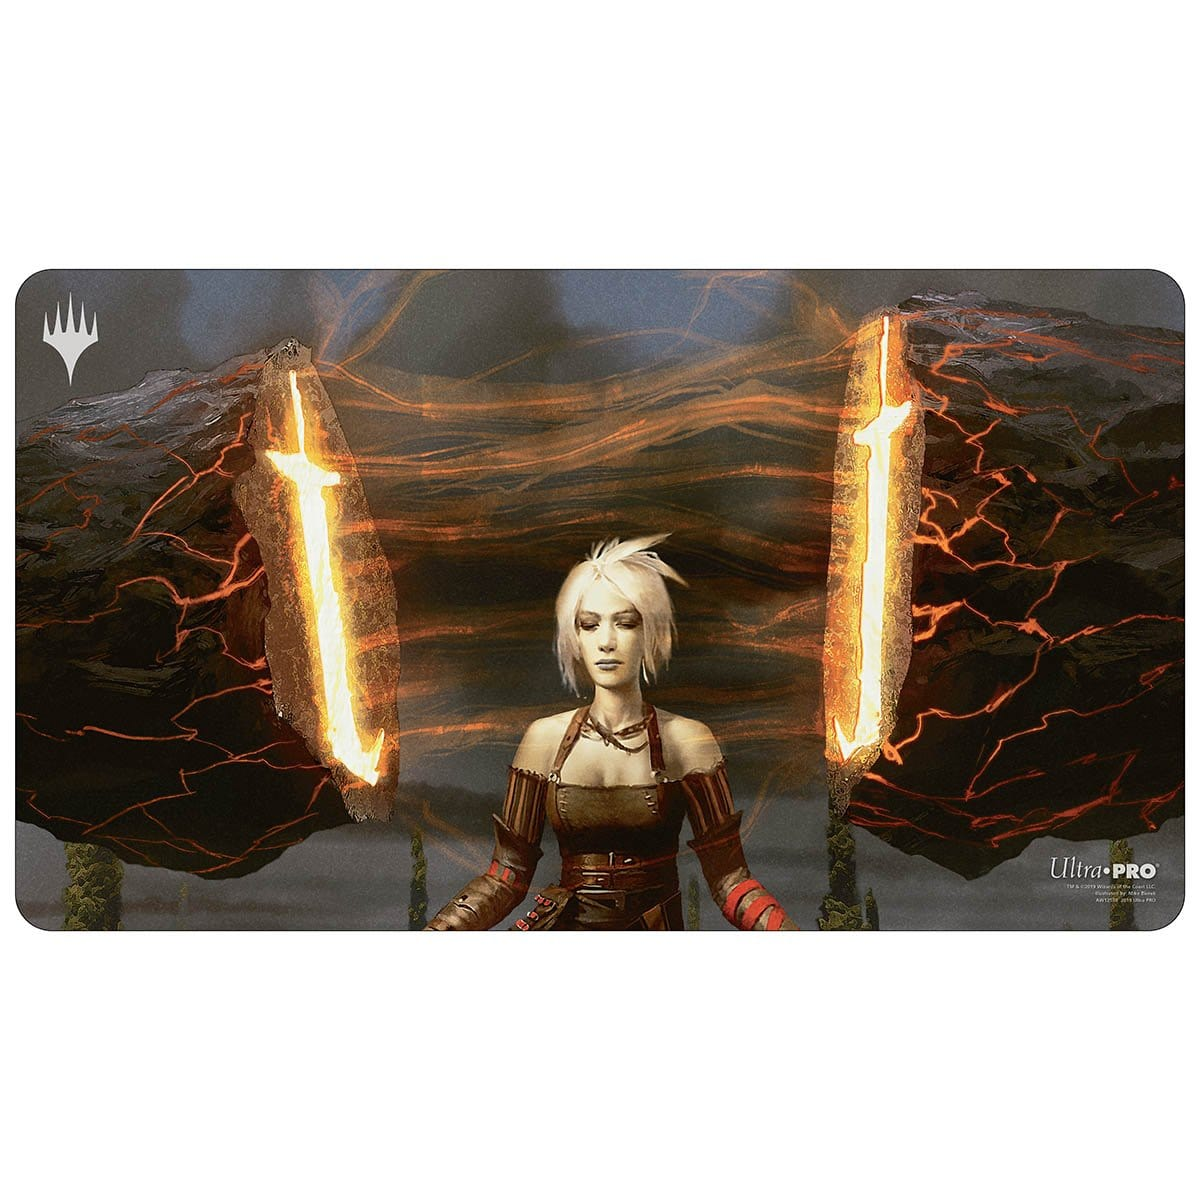 Stoneforge Mystic Playmat - Playmat - Original Magic Art - Accessories for Magic the Gathering and other card games